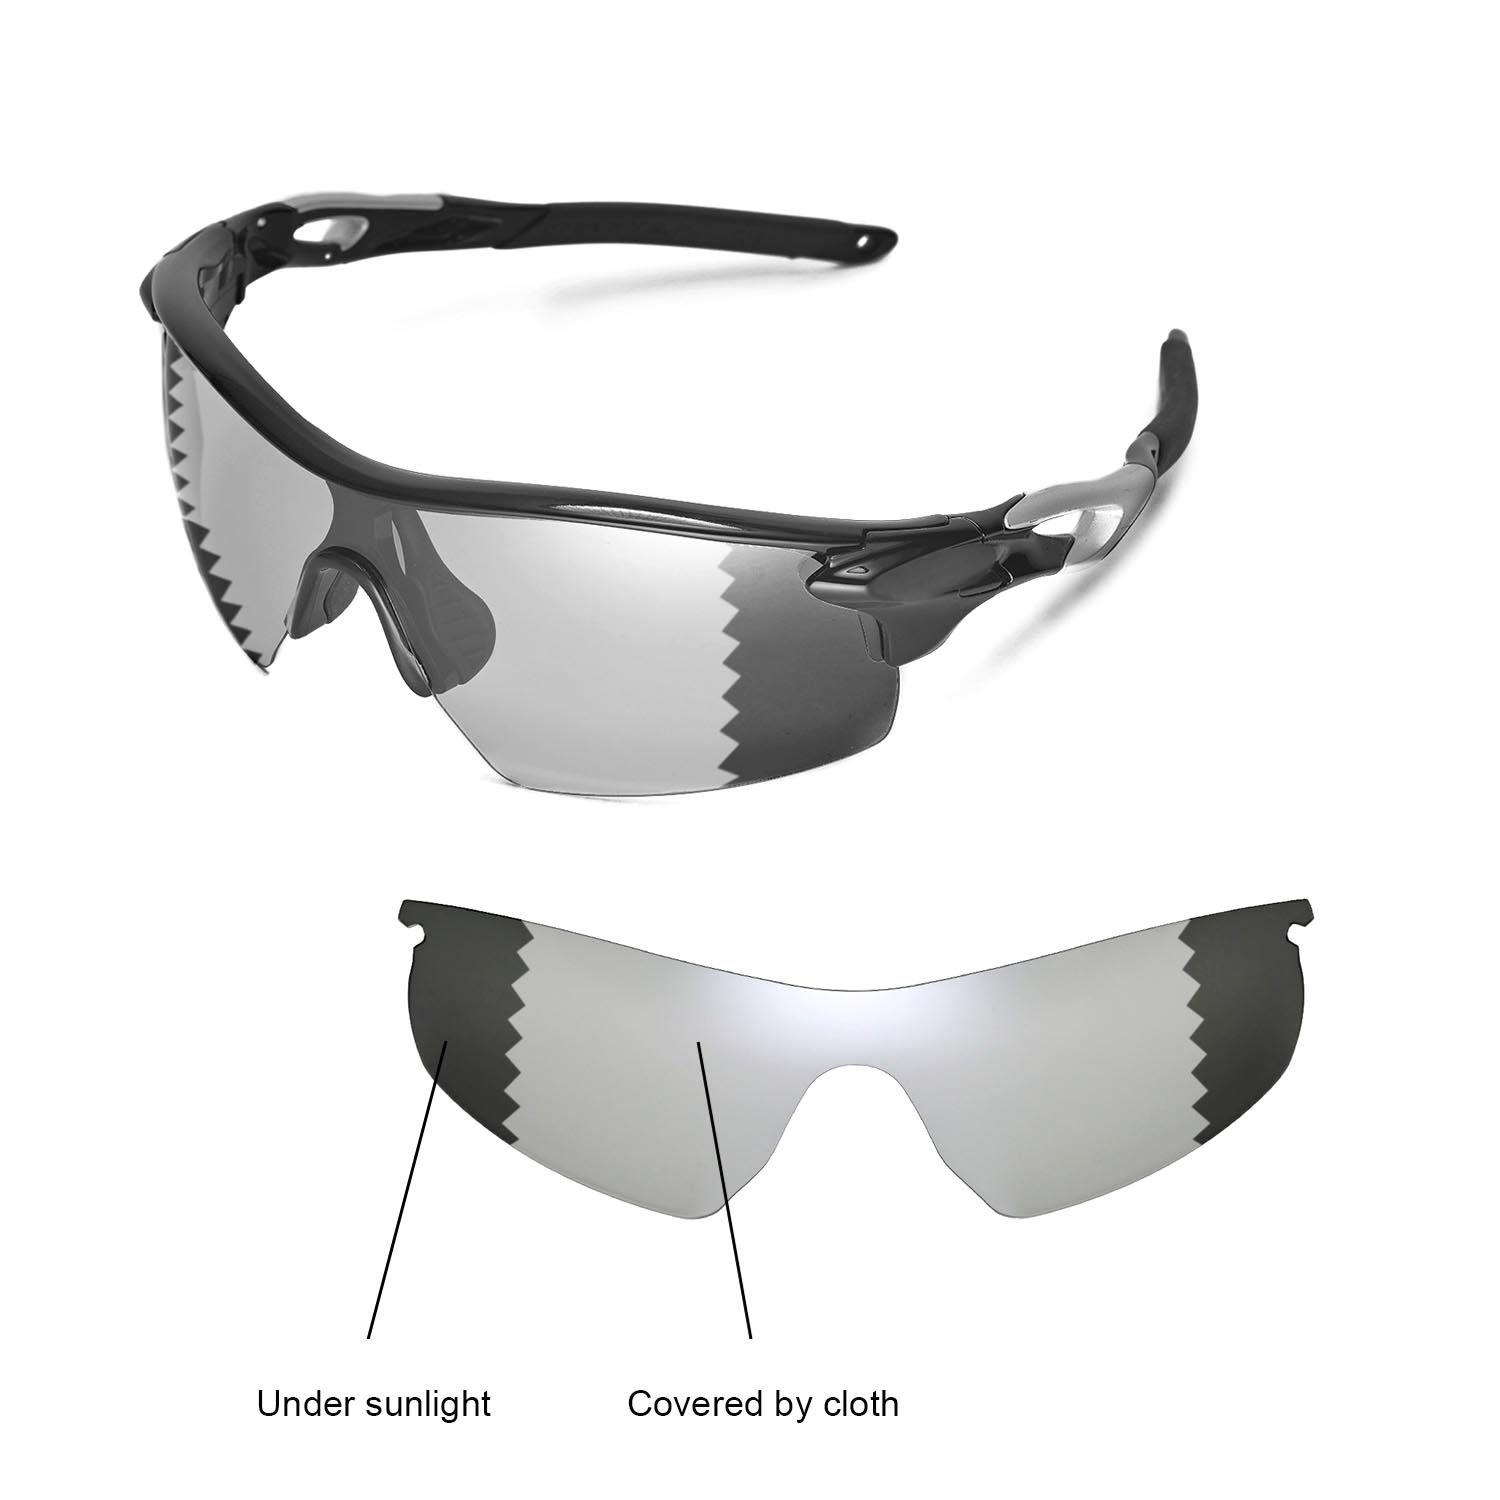 transition lenses 0sjb  oakley safety glasses with transition lenses